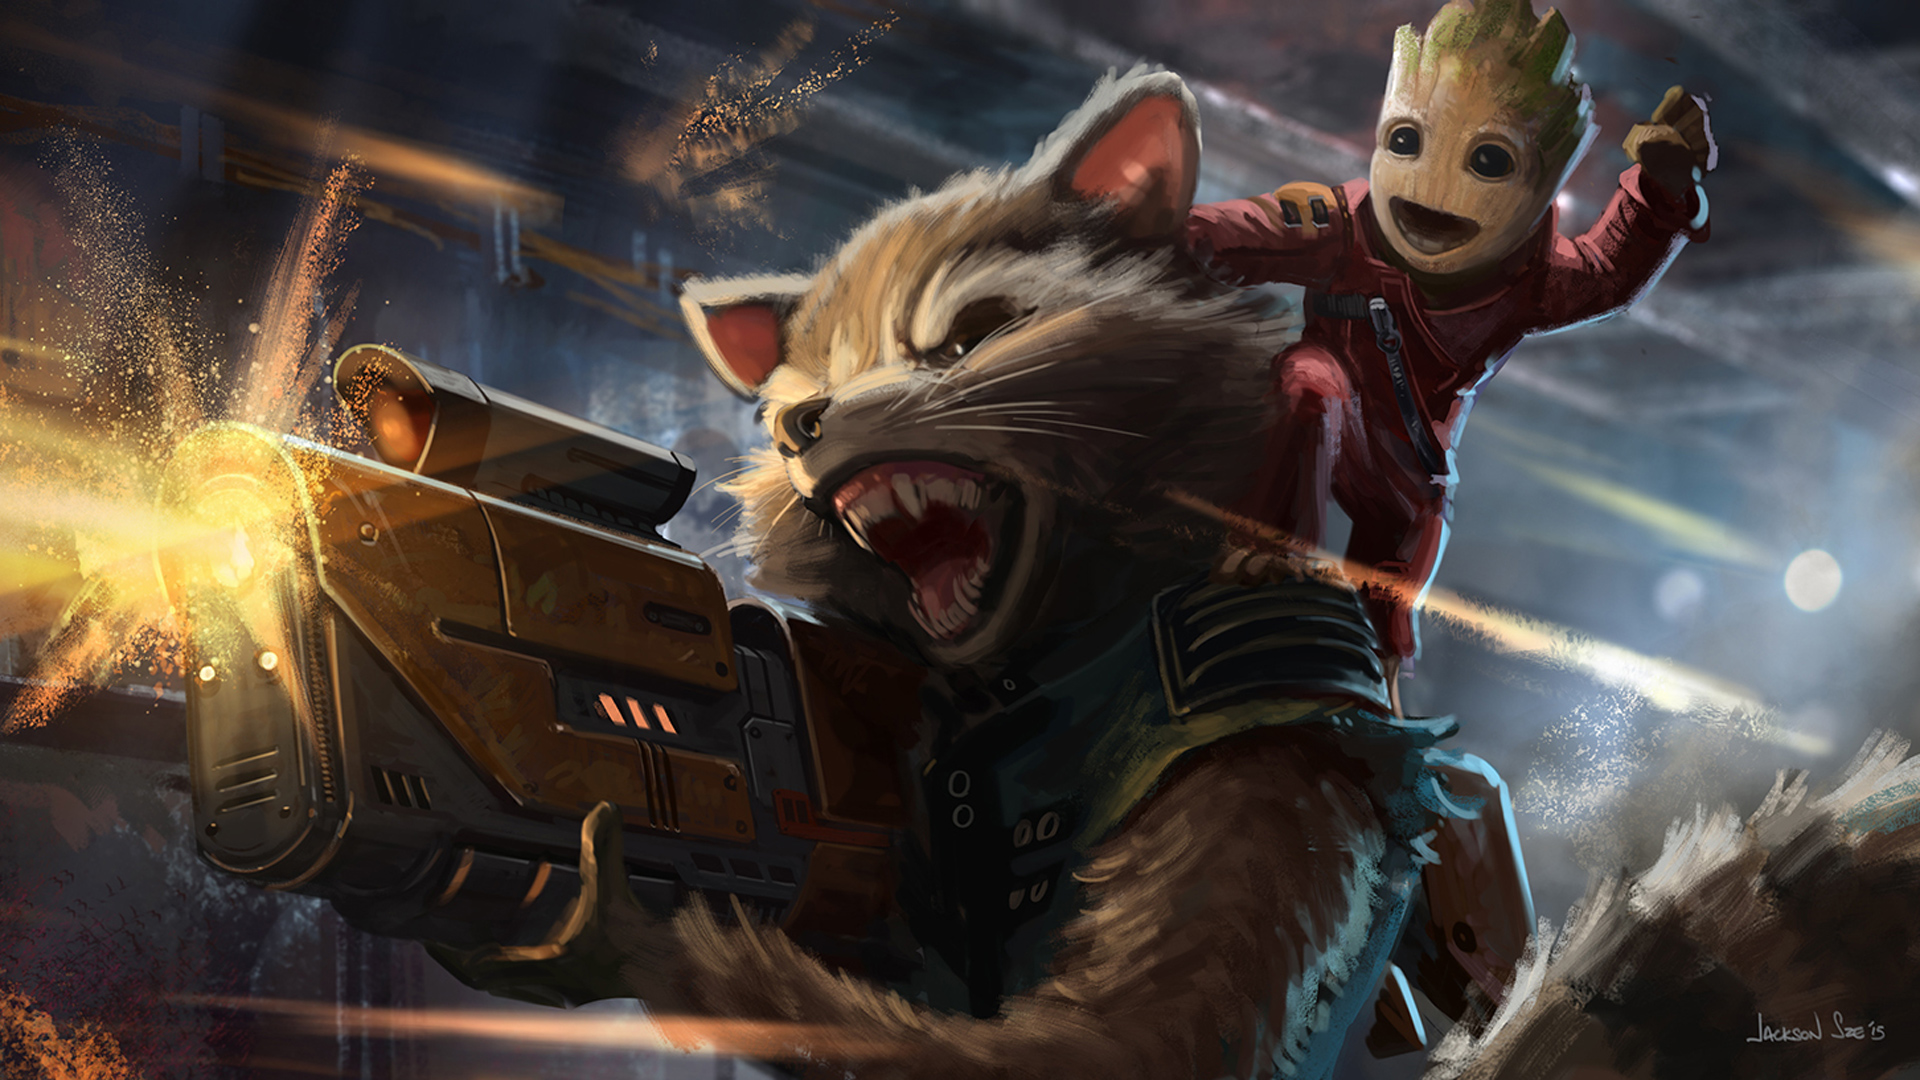 Baby Groot And Rocket Raccoon Artwork Hd Movies 4k Wallpapers Images Backgrounds Photos And Pictures